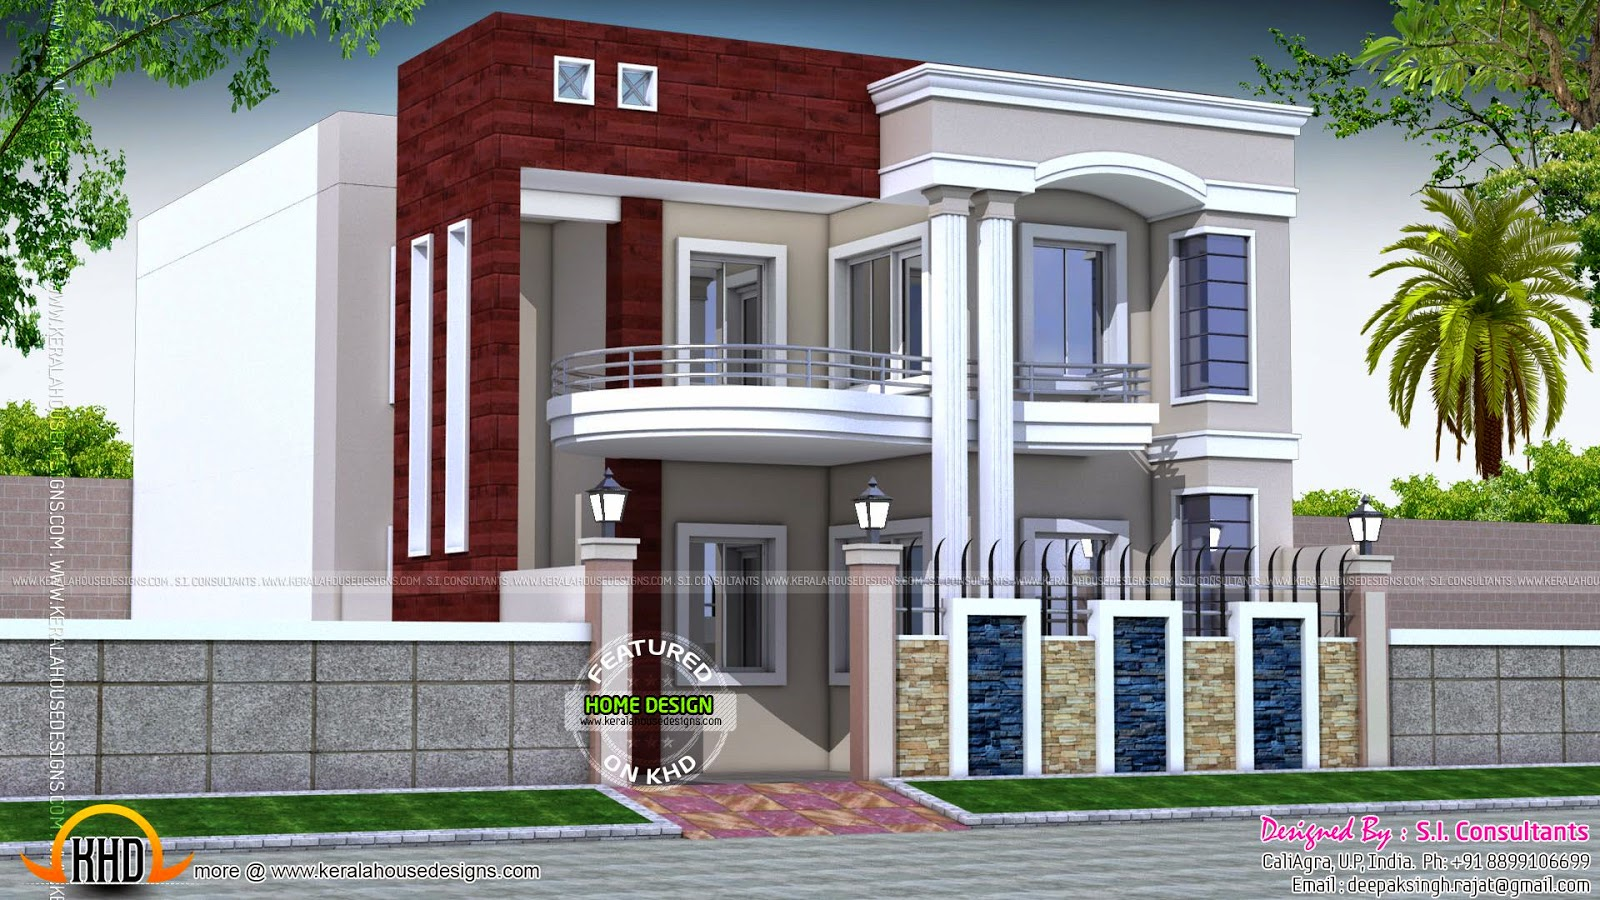 House design in north india kerala home design and floor for House plans india free